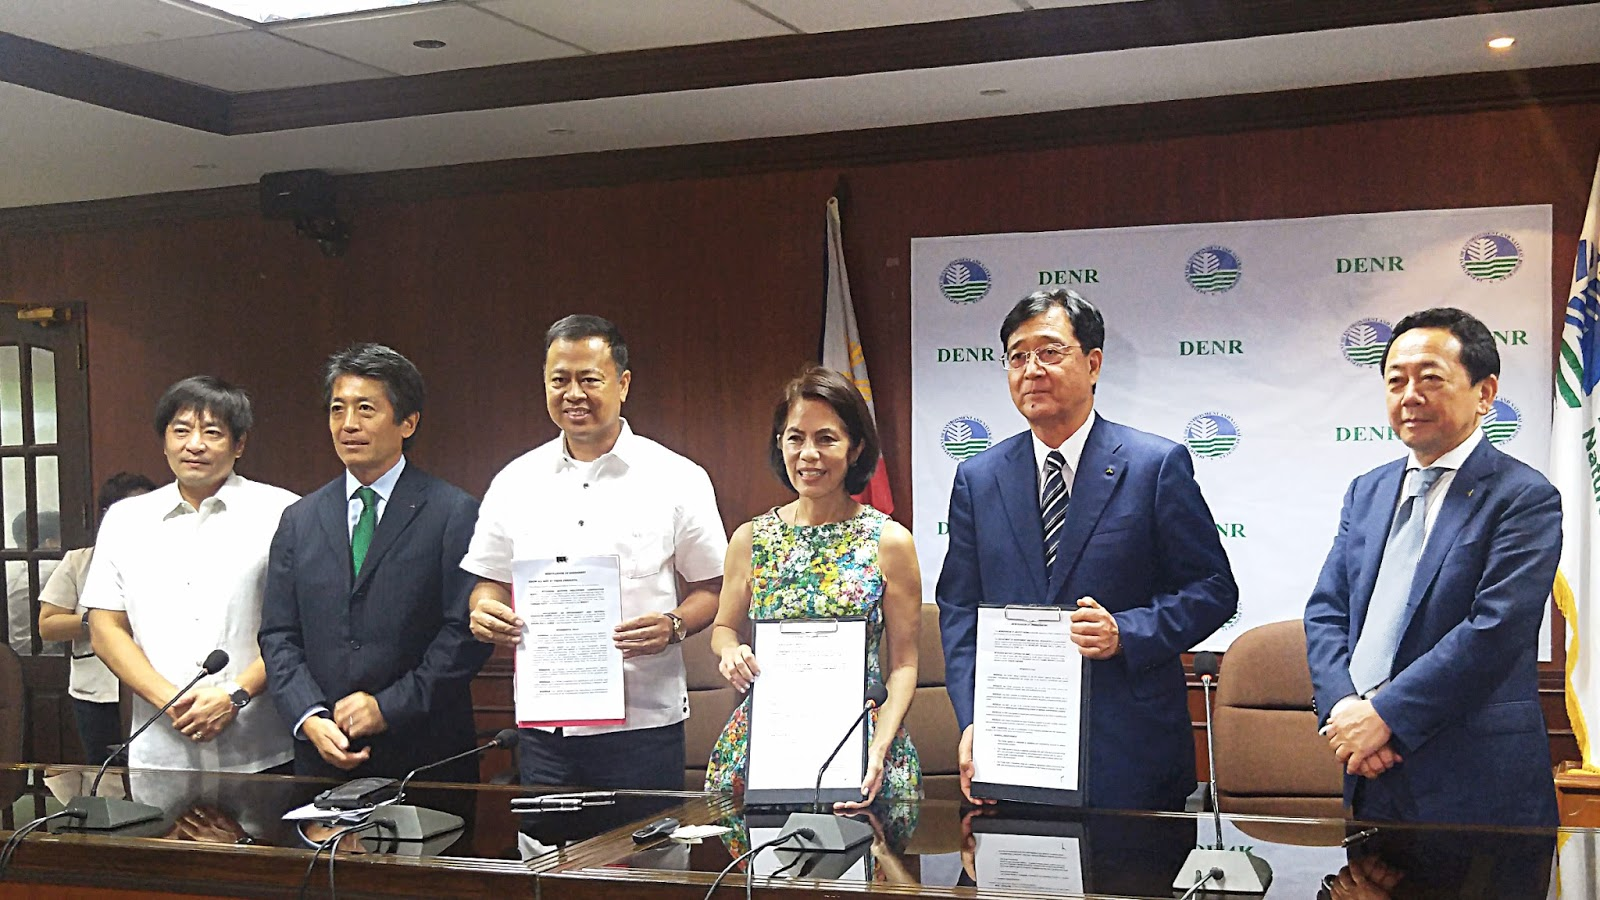 Mitsubishi Motors Philippines Corporation Supports DENR Secretary's Project